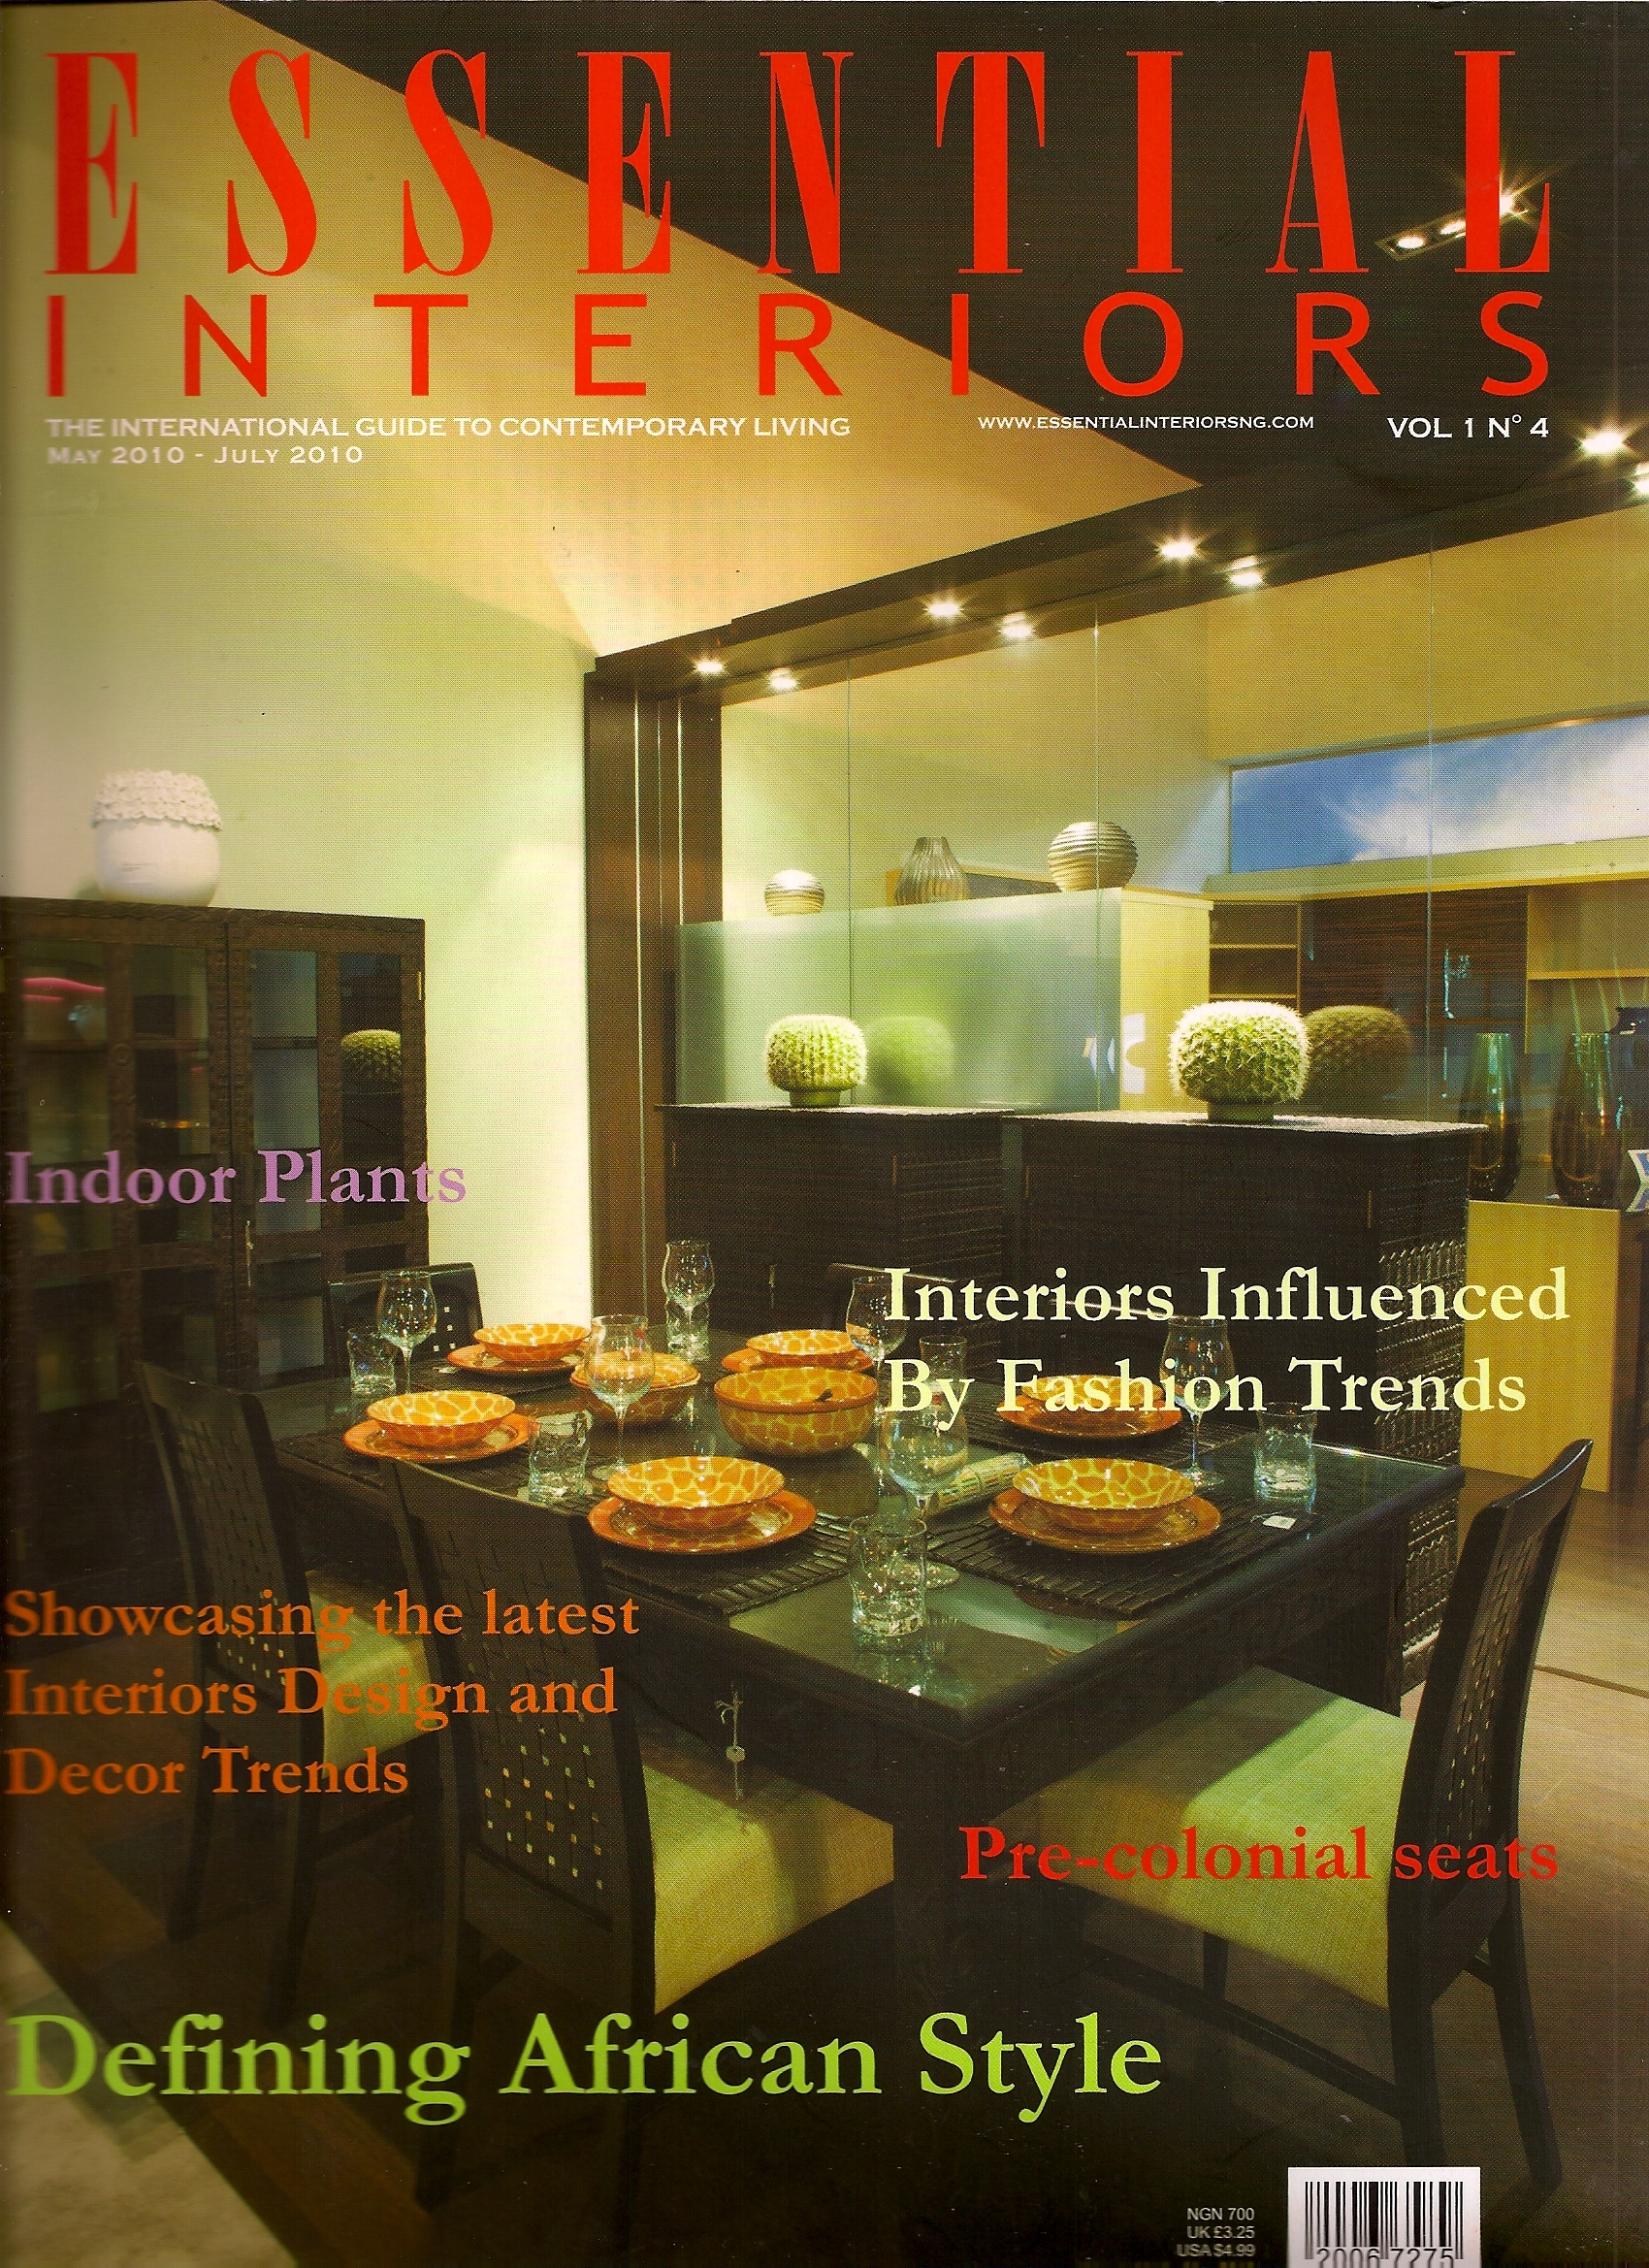 Essential Interiors Magazine Is Nigerias First Interior Design The Magazines Editor In Chief Titi Ogfere Head Of At